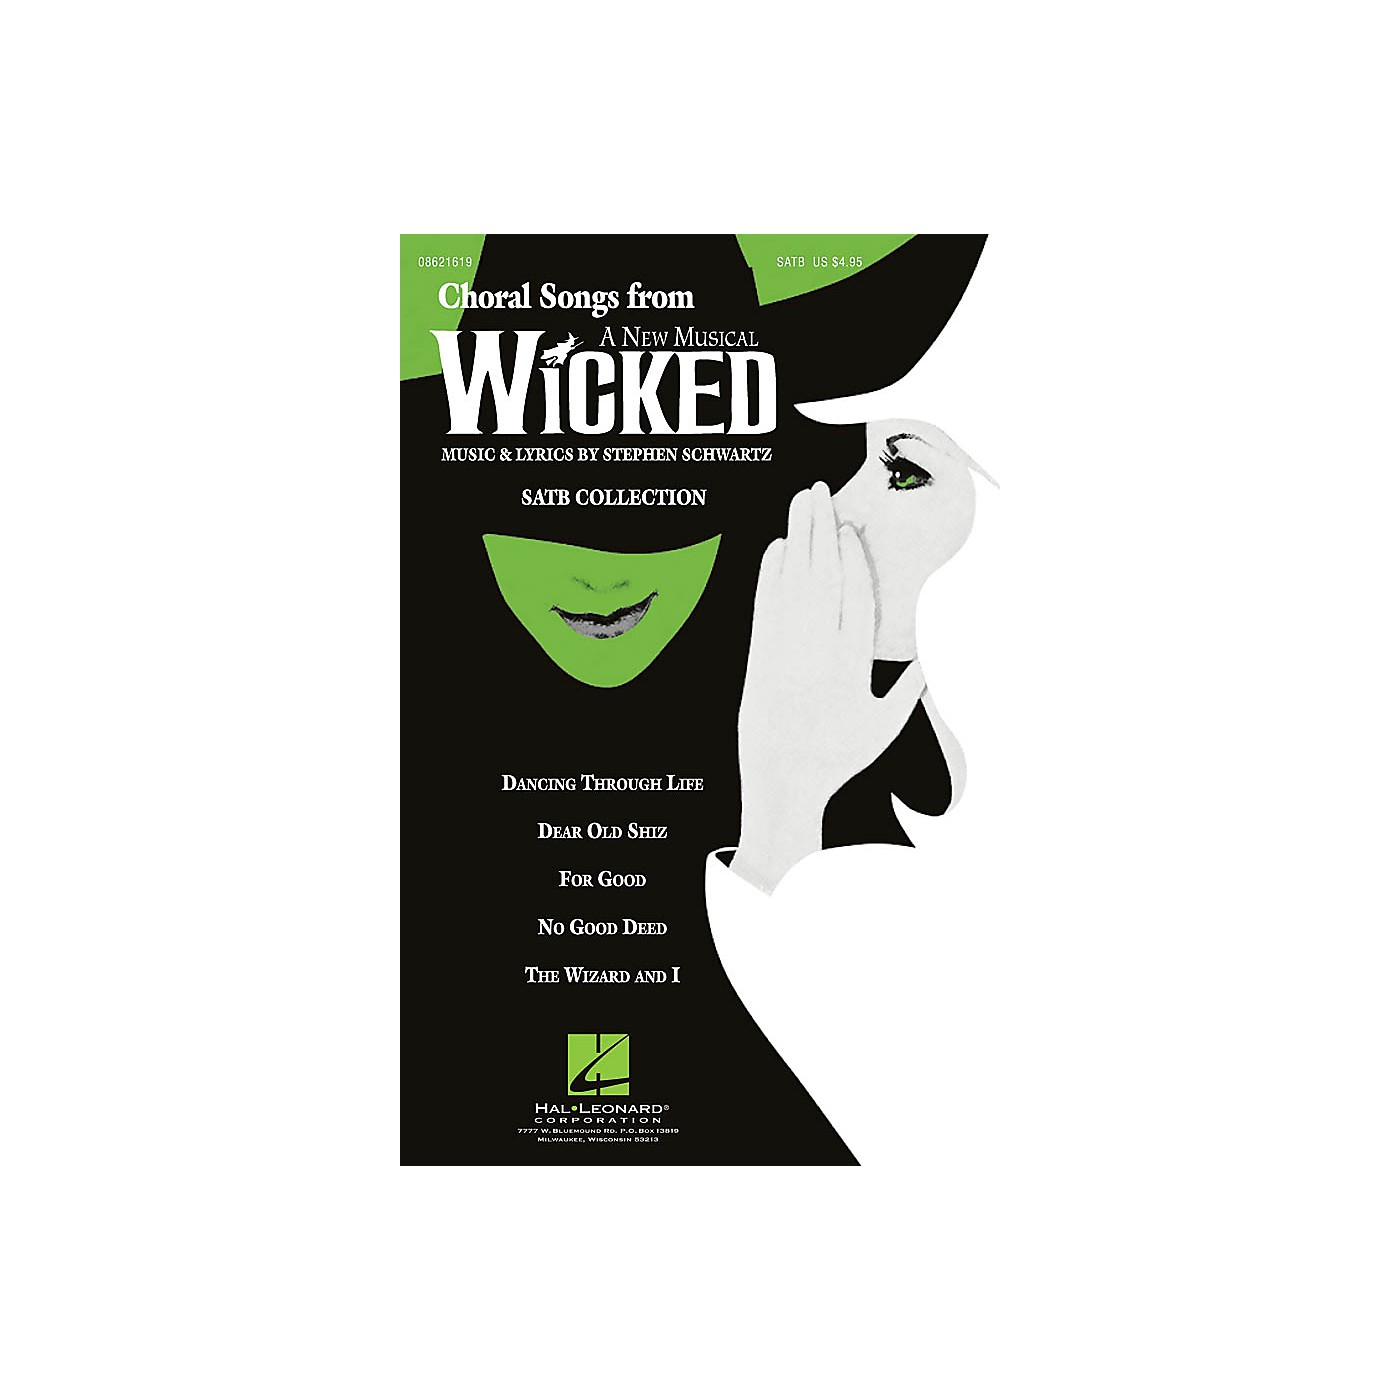 Hal Leonard Choral Songs from Wicked (SATB Collection) ShowTrax CD Arranged by Ed Lojeski thumbnail